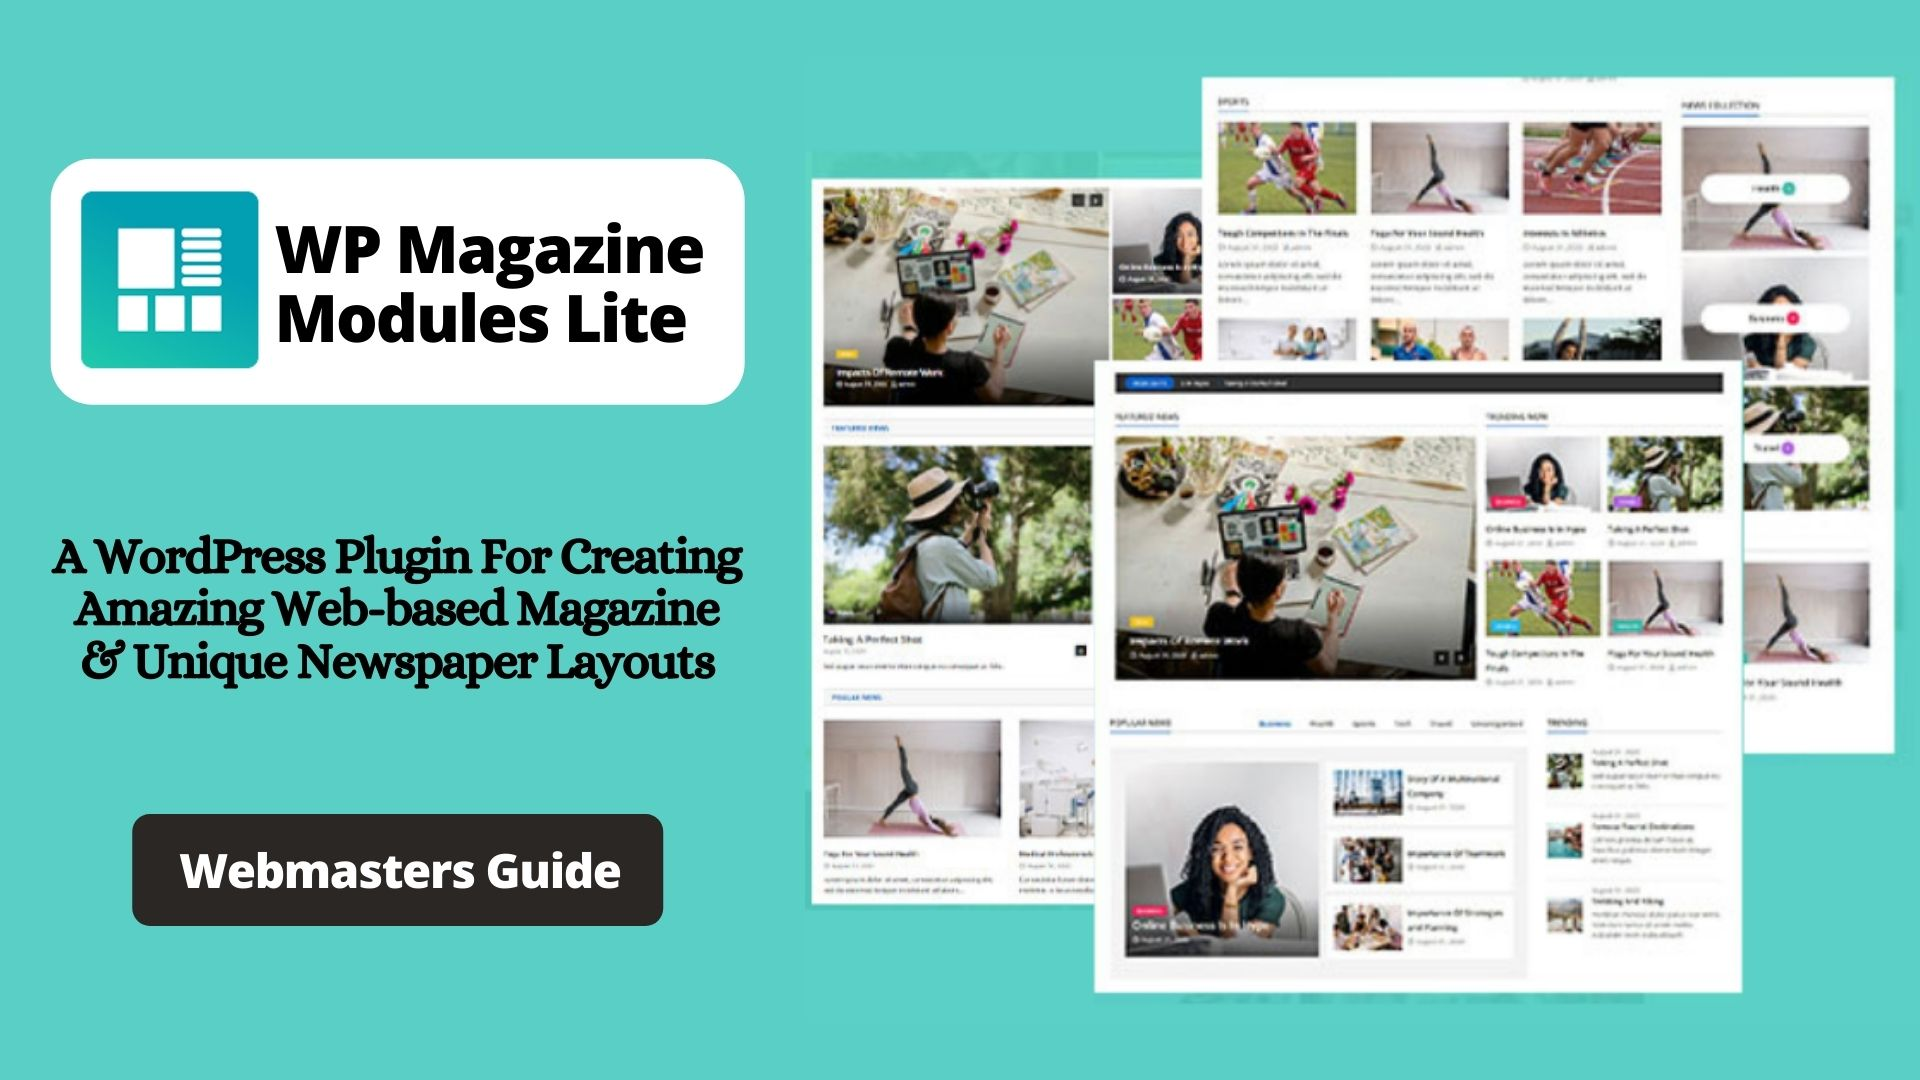 What Is WP Magazine Modules Lite?